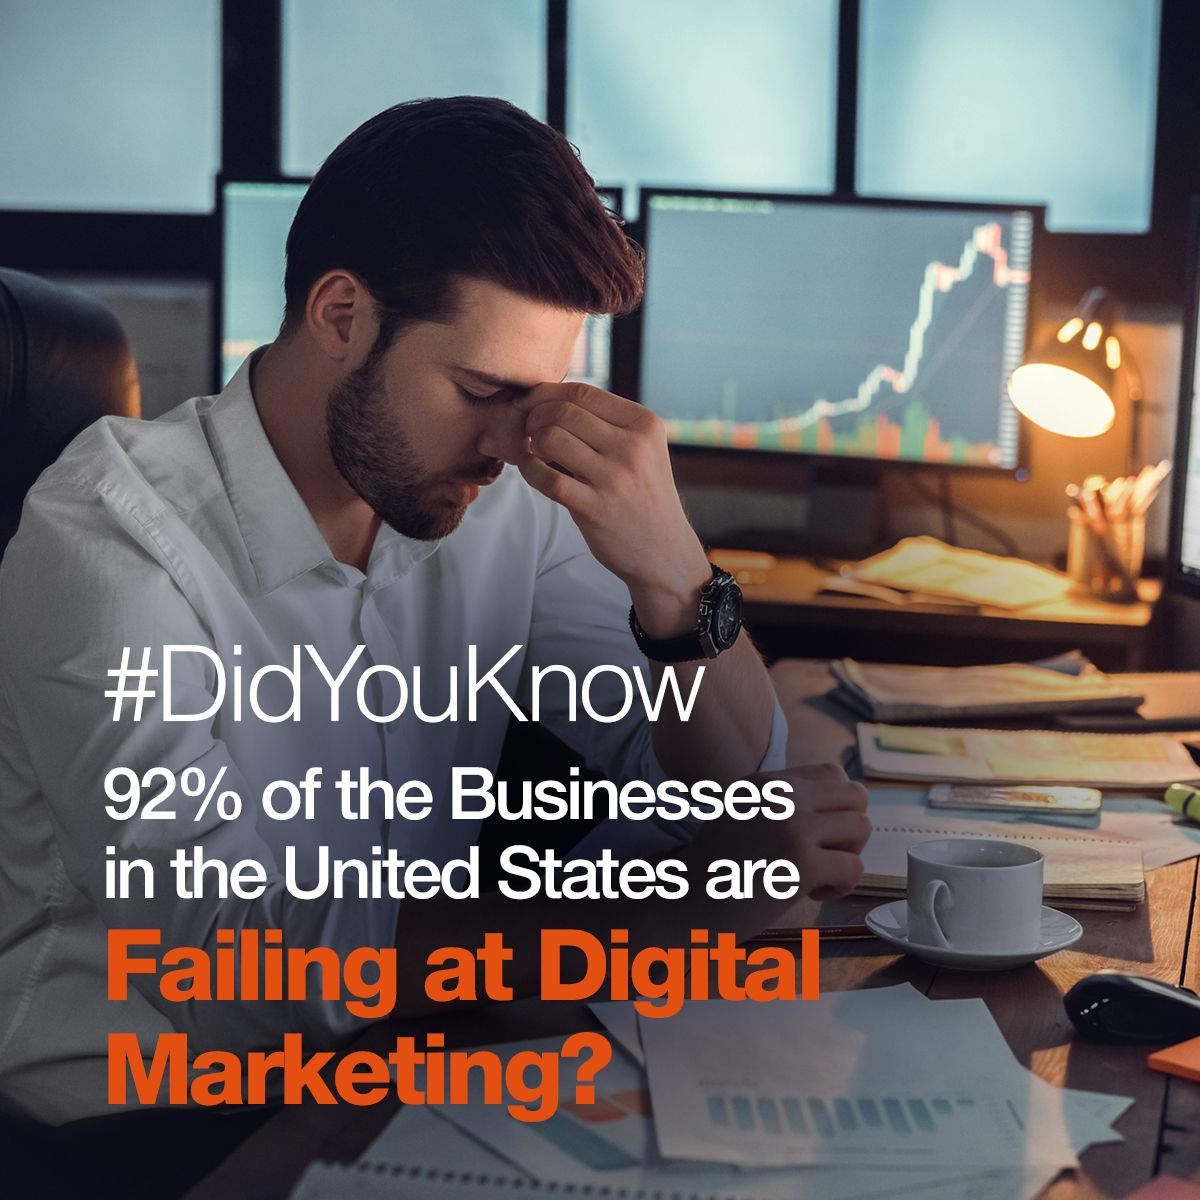 Did You Know That 92% of the 30 million Businesses in the United States are Failing at Digital Marketing?